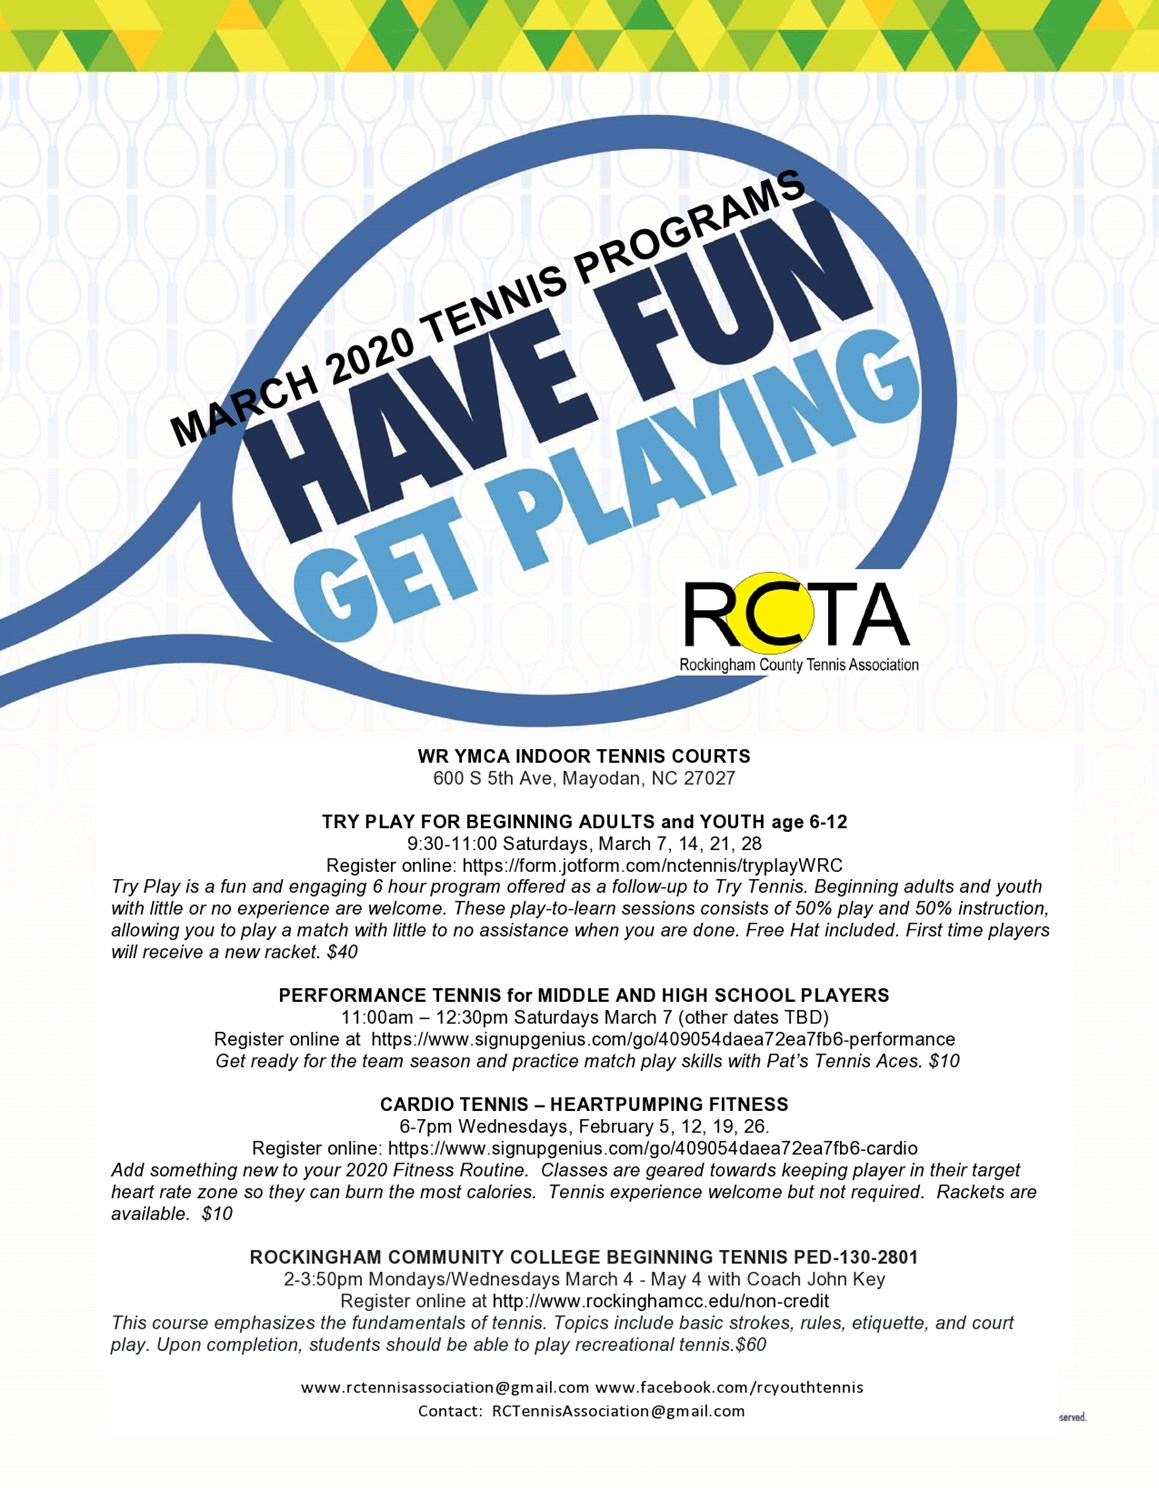 RC_Tennis_MARCH_2020_Program_flyer-page0001